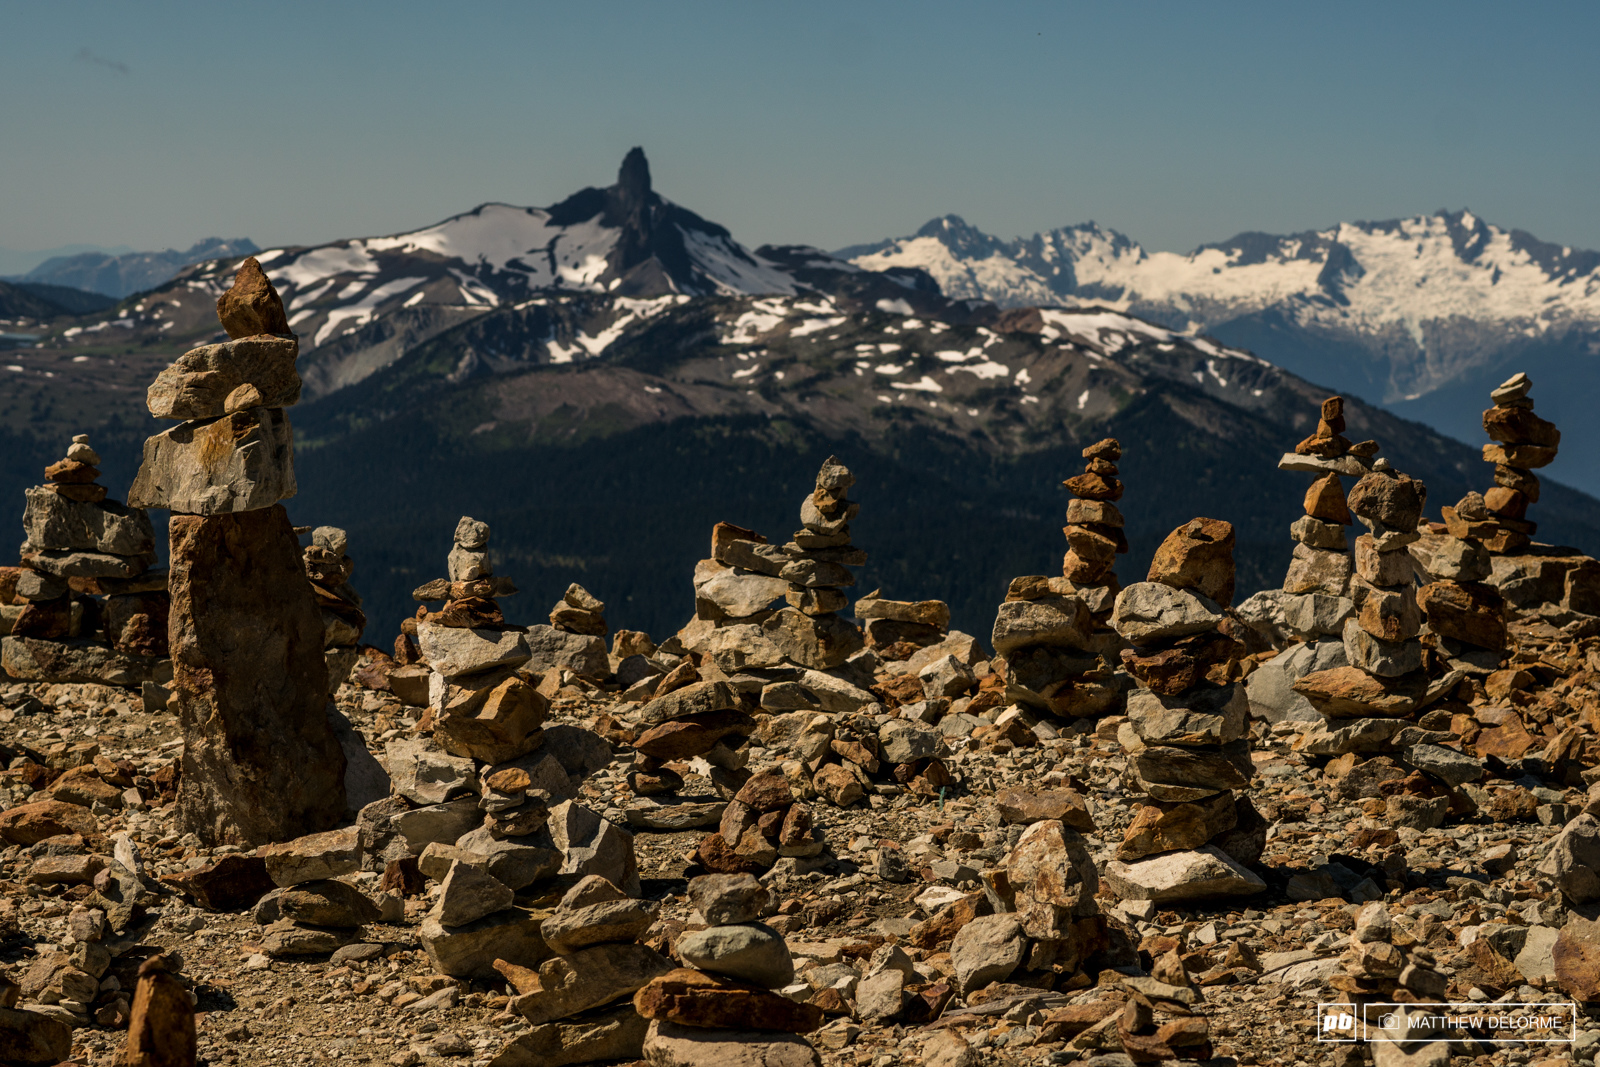 Black Tusk and lucky cairns. The views are breath taking and the stages are sublime.